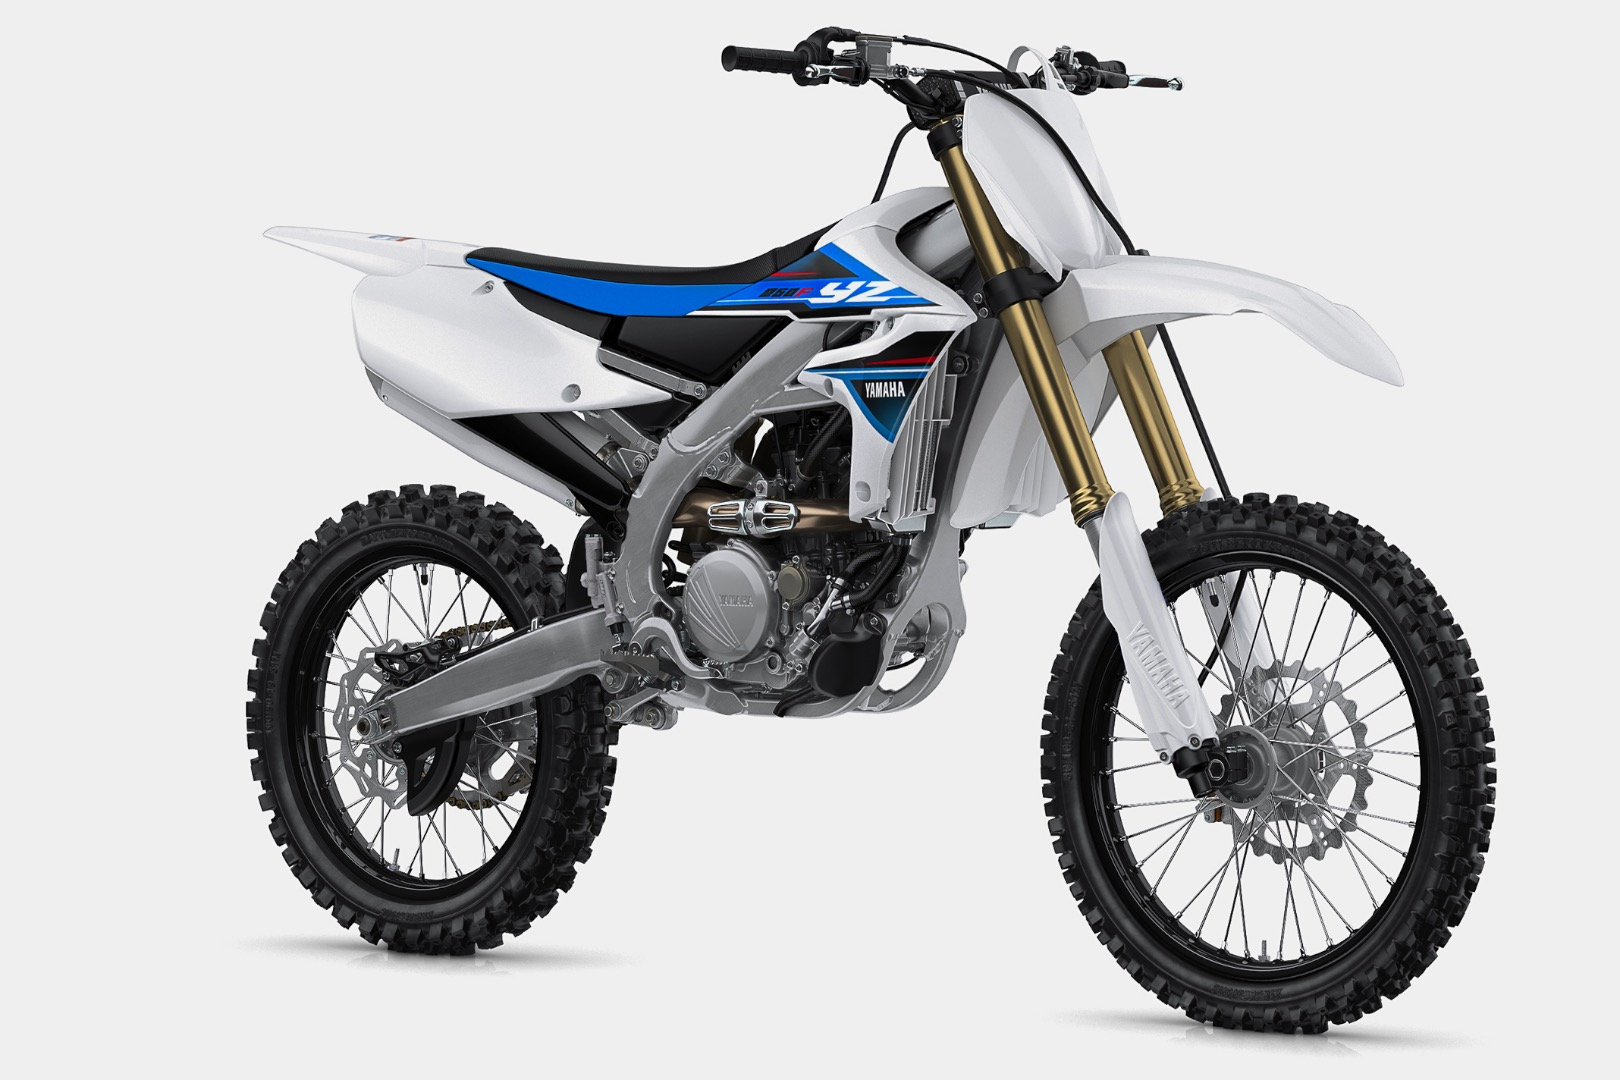 2019 Yamaha YZ250F seat height